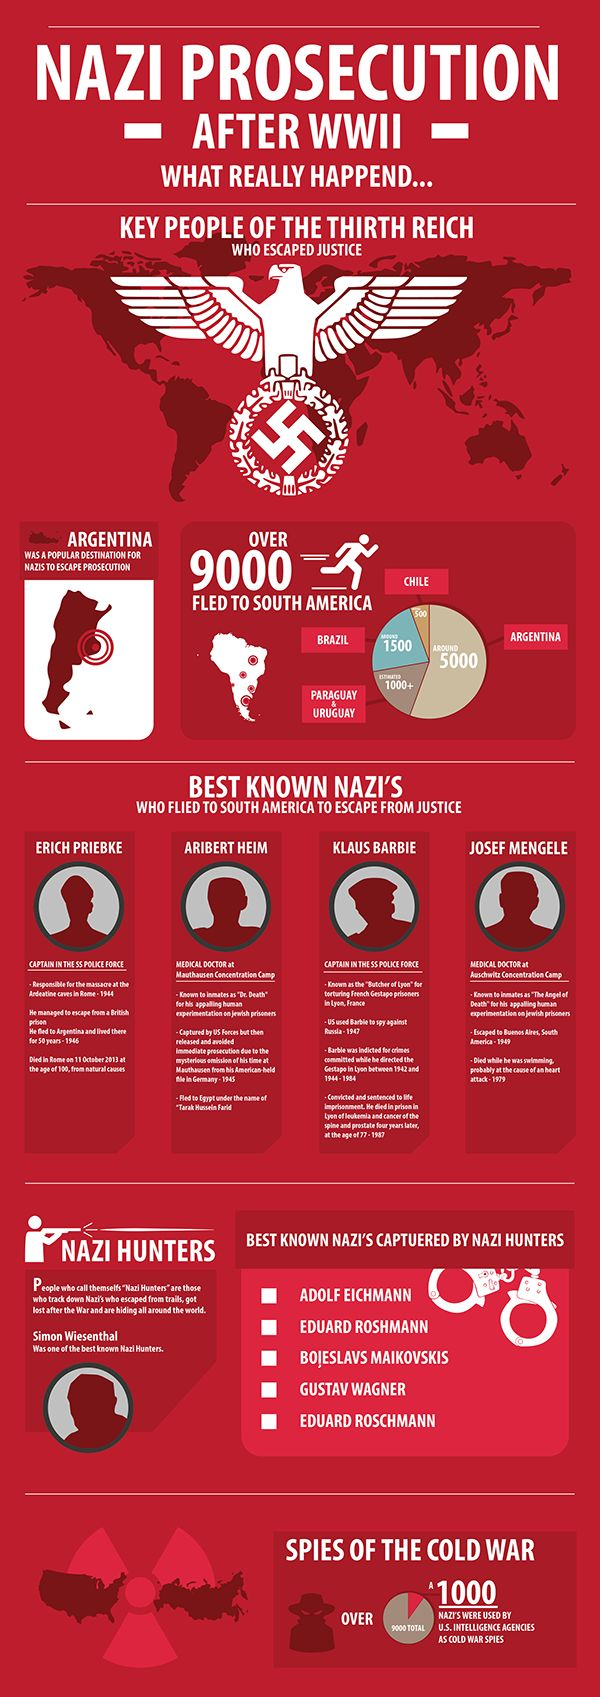 This is an infographic about the Nazi Prosecution after World War II Made by: Martijn Fabrie (Behancé)